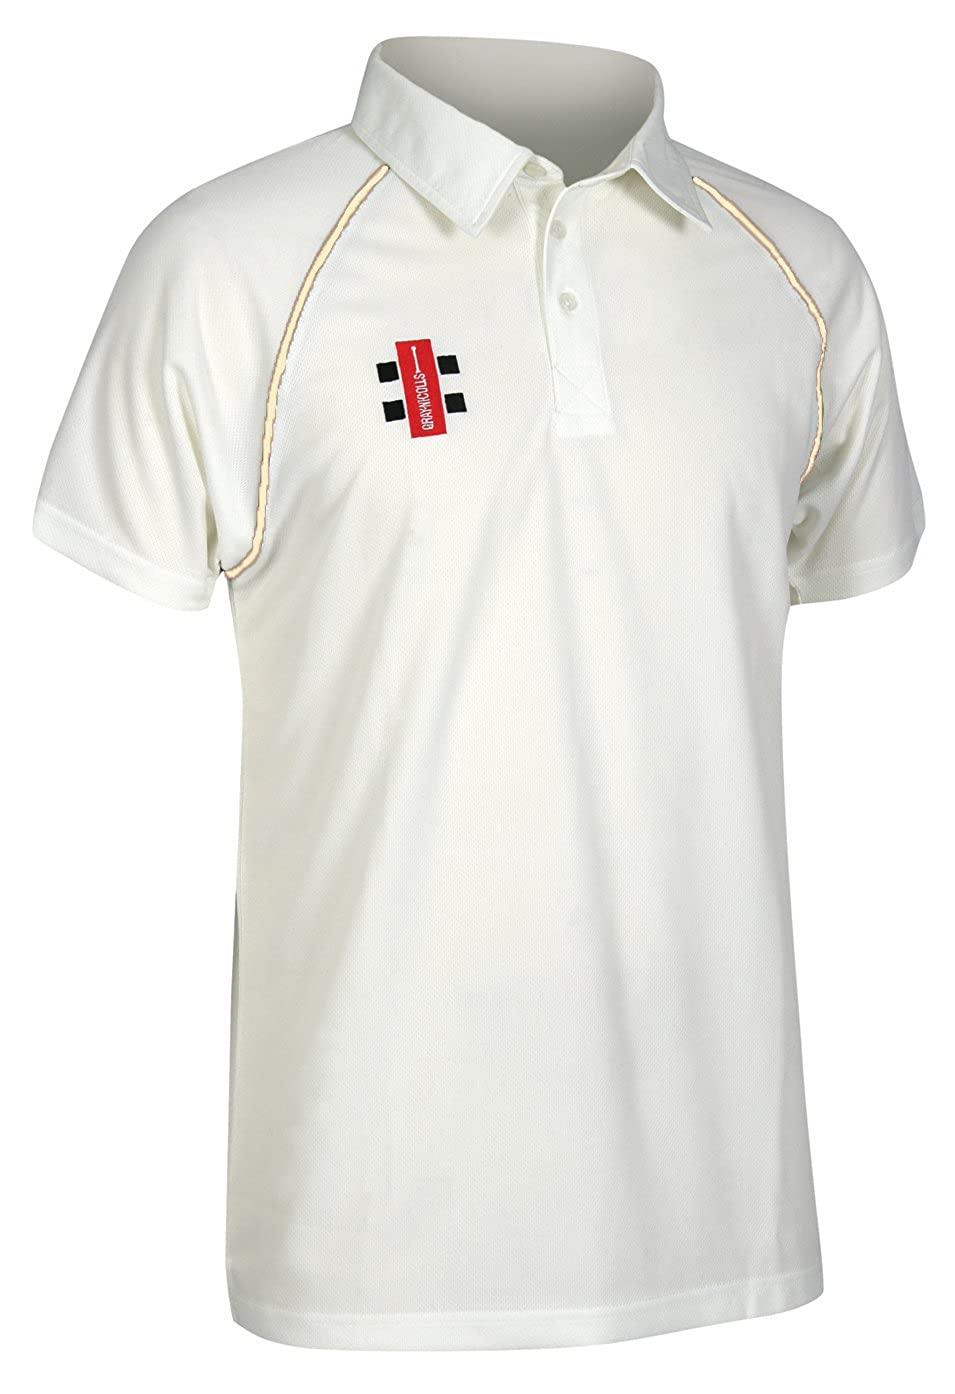 Gray Nicolls Kids Matrix Boys Short Sleeve Cricket Shirt 5 Trim Colours Availa